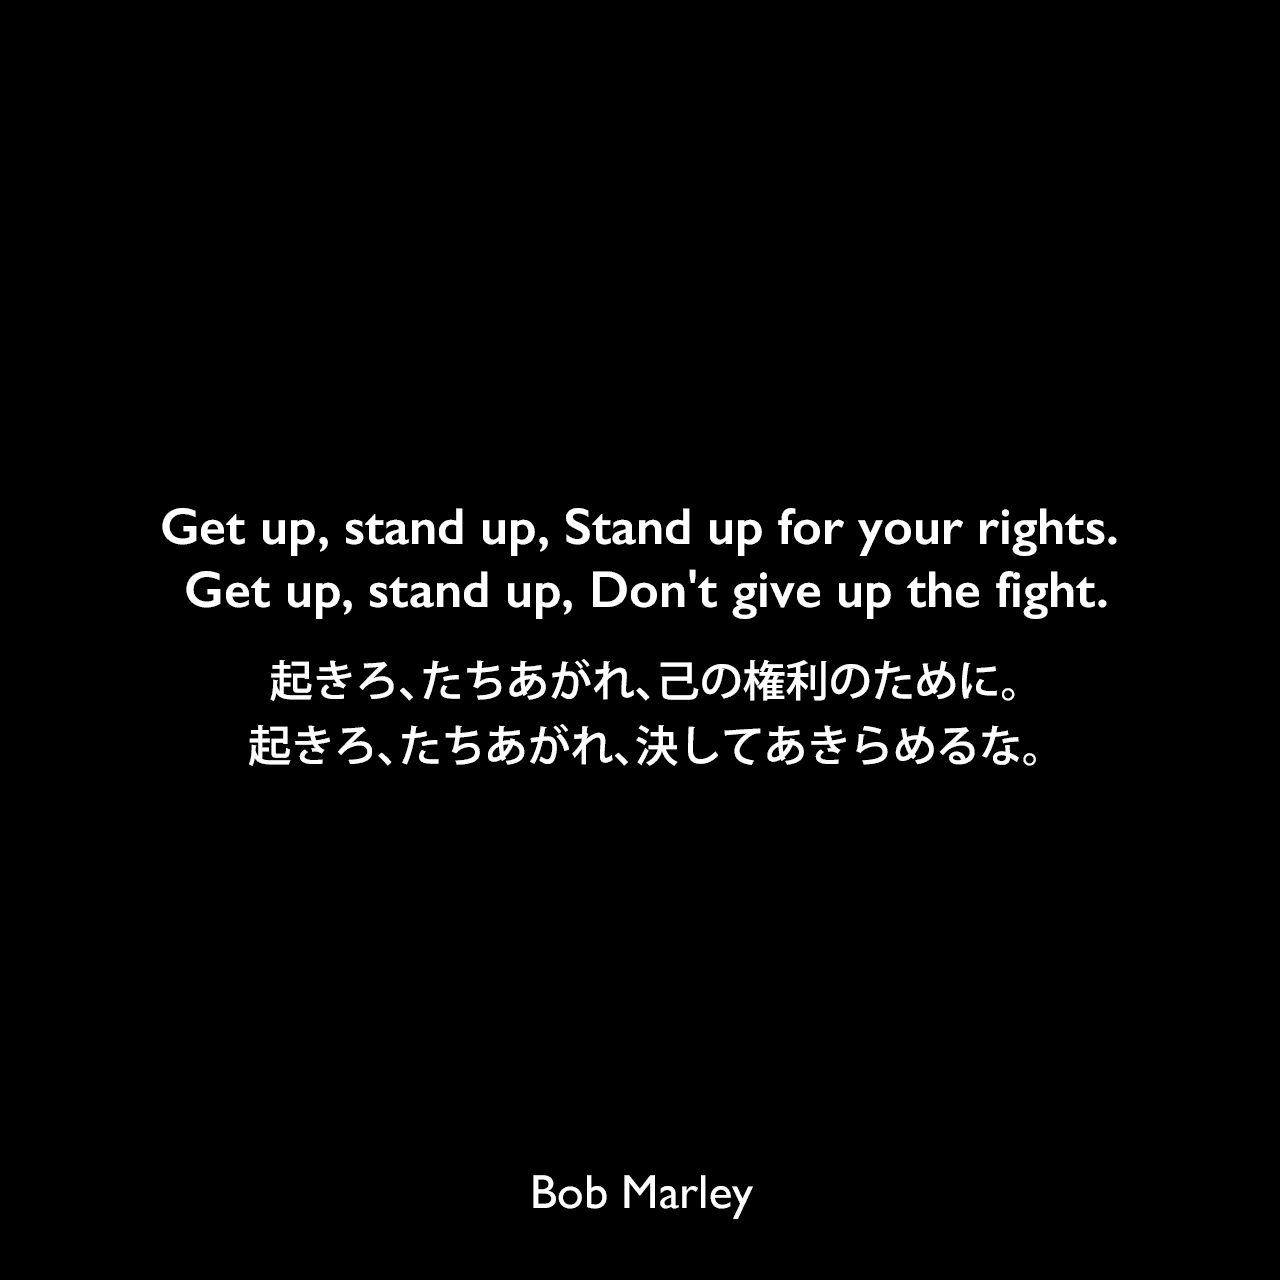 Get up, stand up, Stand up for your rights. Get up, stand up, Don't give up the fight.起きろ、たちあがれ、己の権利のために。起きろ、たちあがれ、決してあきらめるな。Bob Marley